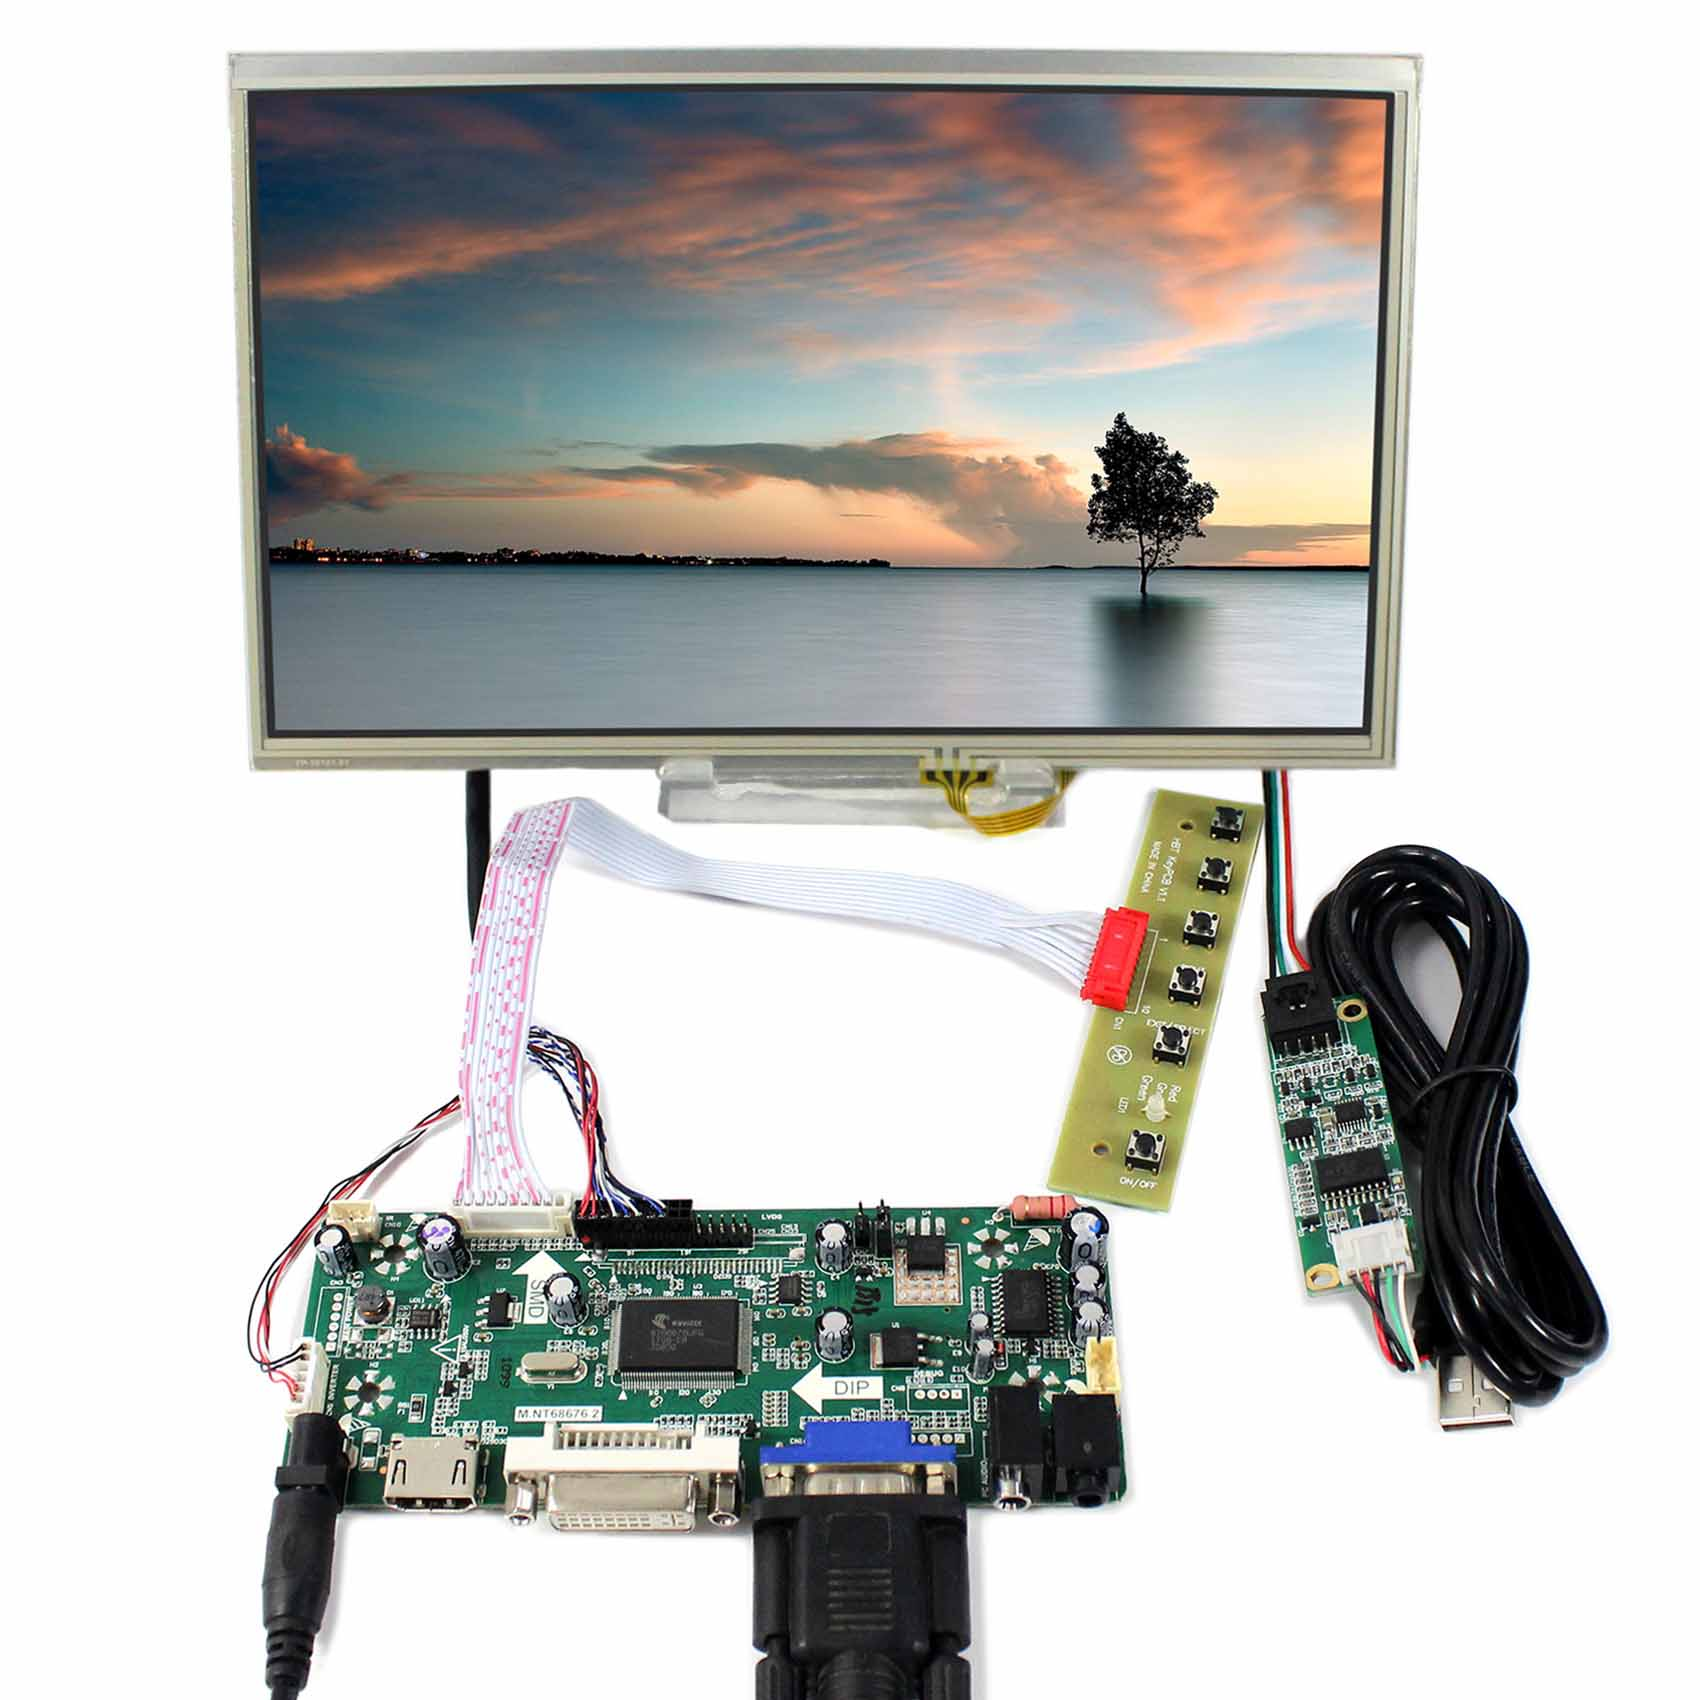 HDMI DVI VGA LCD Controller Board 10.1inch B101AW03 1024x600 Touch LCD Screen free shipping vga audio hdmi dvi lcd controller board hdmi dvi for 10 1 inch 1024x600 n101l6 l0a n101l6 l02 wled lvds lcd panel